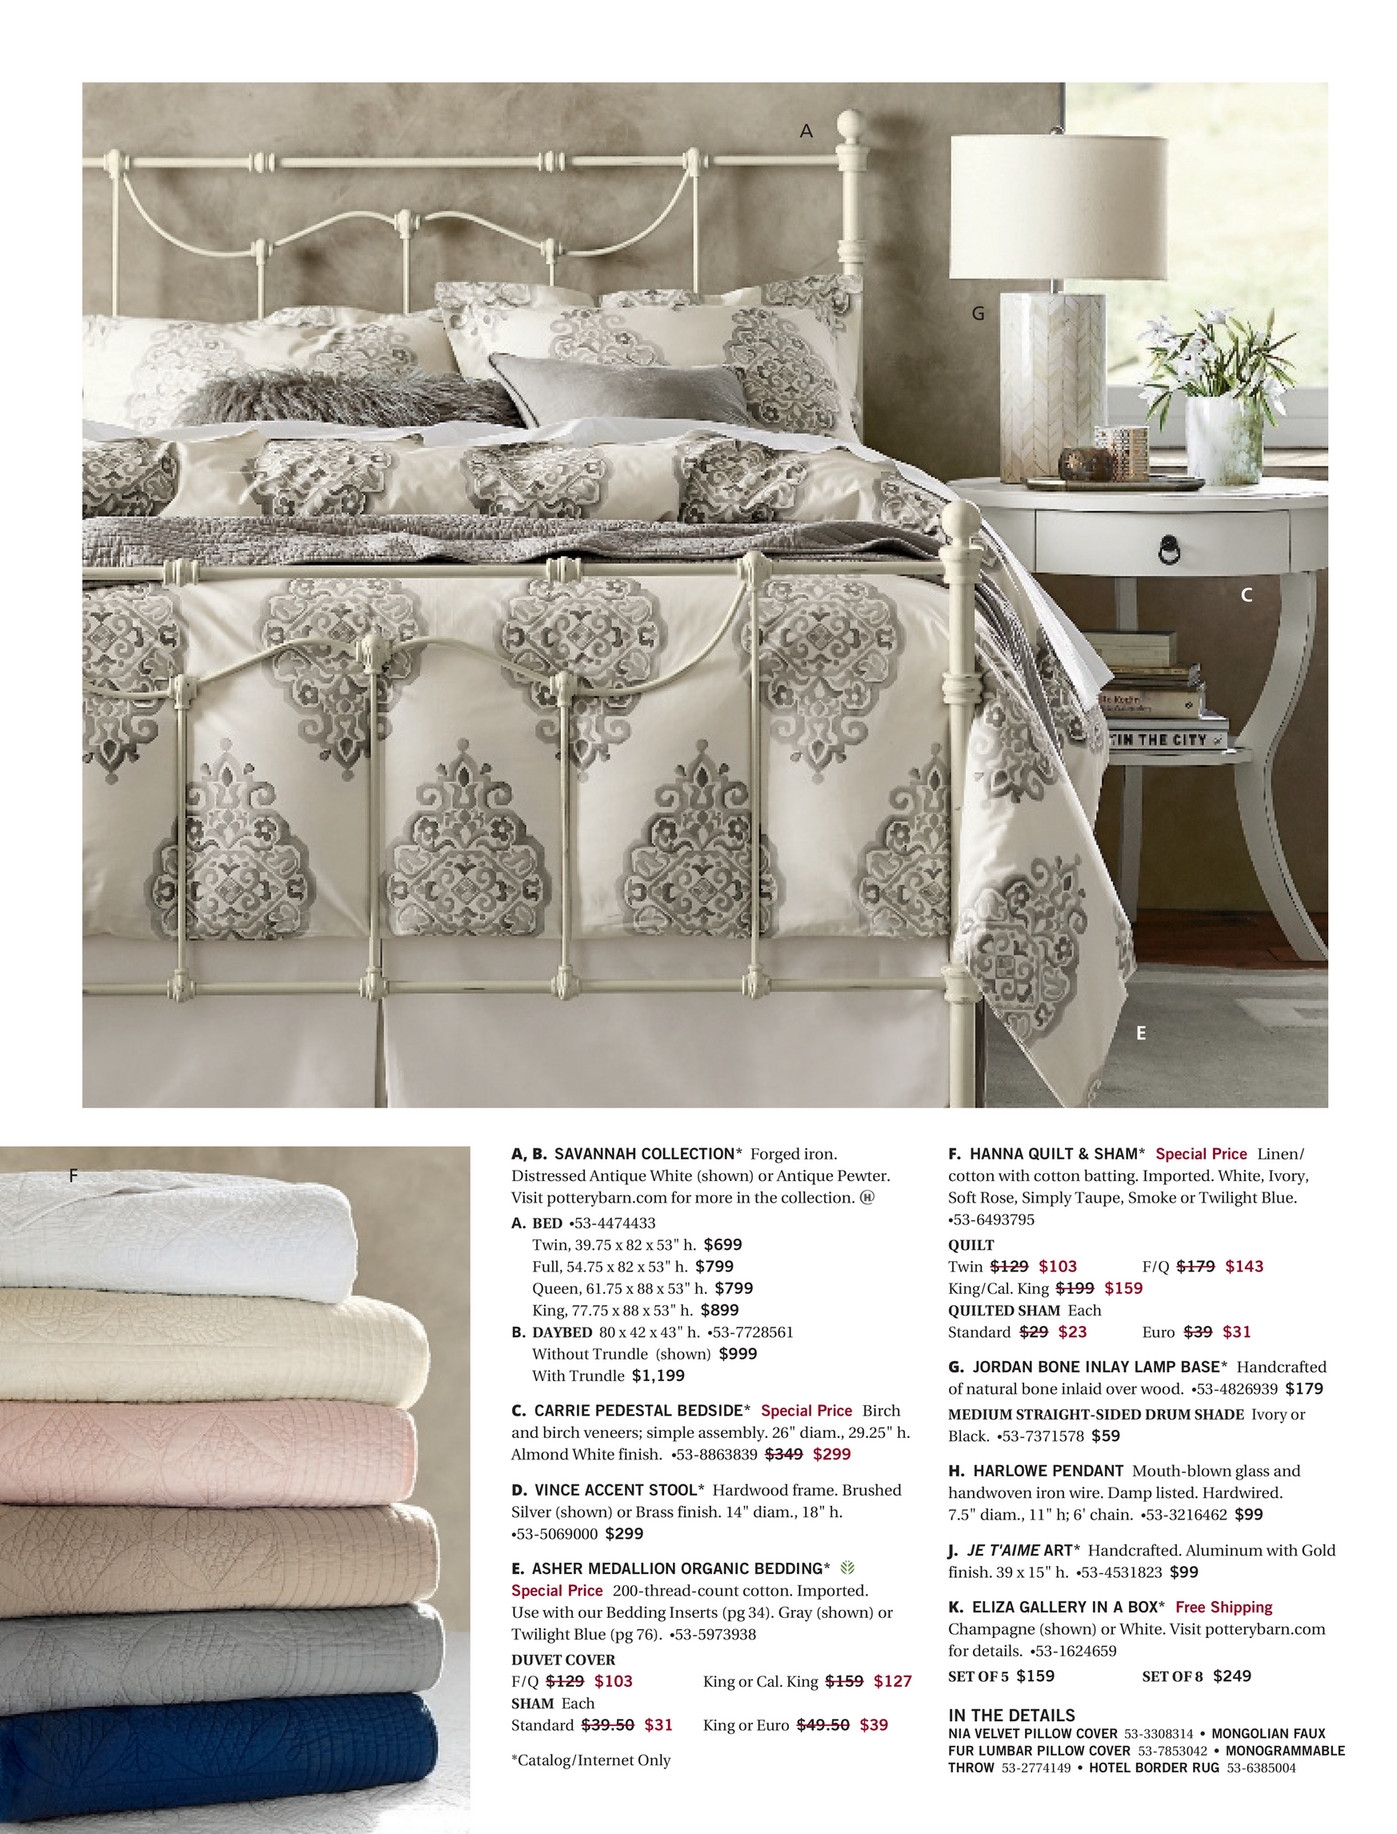 pottery barn - bed & bath spring 2017 d1 - page 46-47